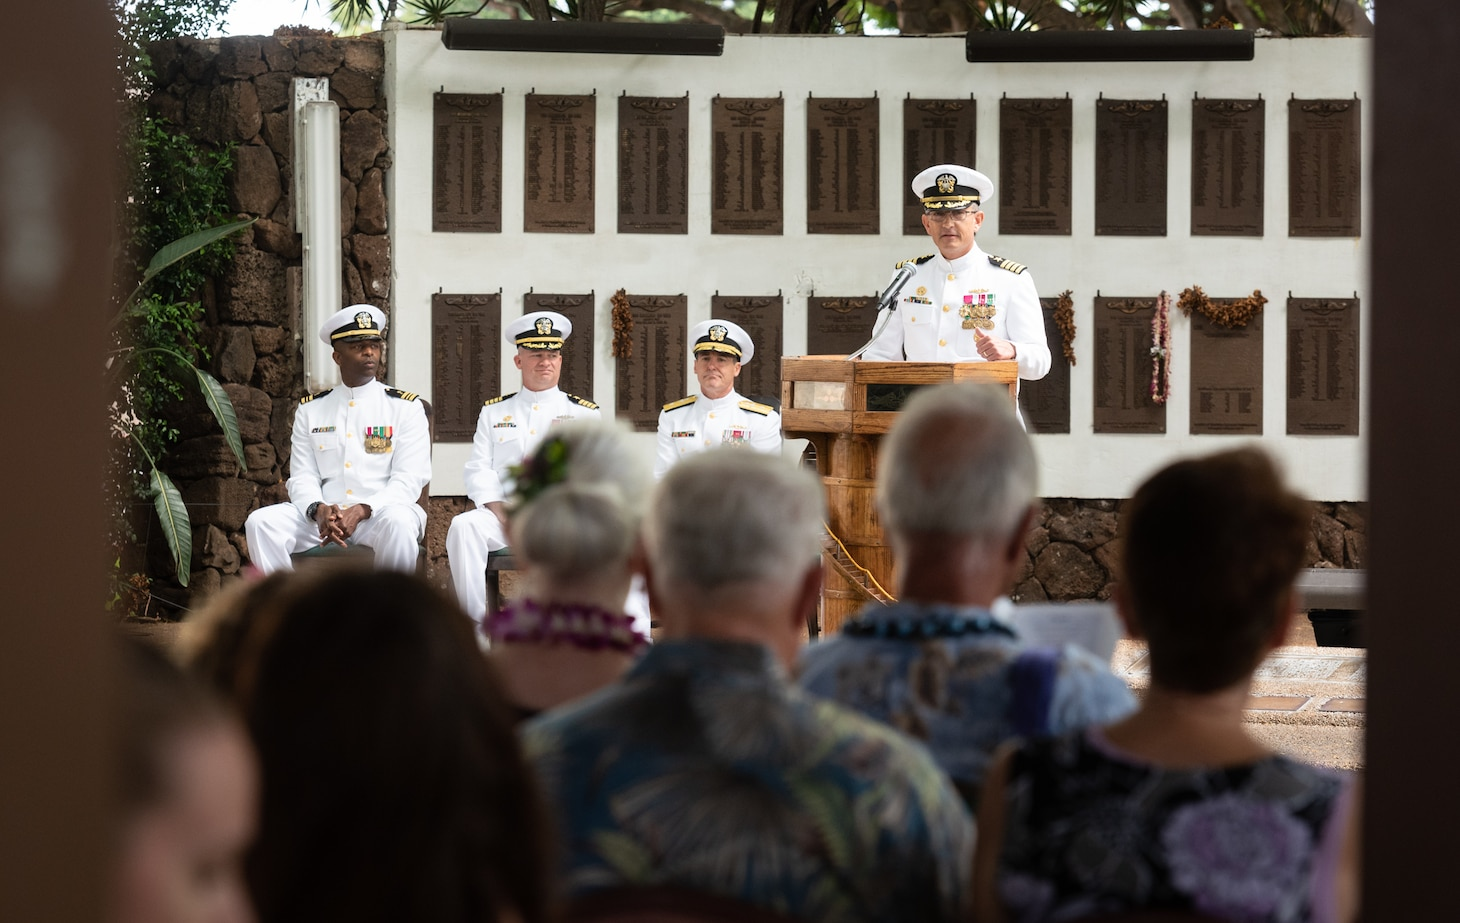 190604-N-KC128-0087 JOINT BASE PEARL HARBOR-HICKAM, Hawaii (June 4, 2019) Capt. Andrew Hertel, delivers remarks during the change of command ceremony of Naval Submarine Training Center Pacific (NSTCP) at Parche Memorial on Joint Base Pearl Harbor-Hickam, Hawaii, June 4, 2019. Capt. Andrew Hertel, was relieved by Capt. Lance Thompson, after more than 30 months in command. (U.S. Navy Photo by Mass Communication Specialist 1st Class Daniel Hinton)